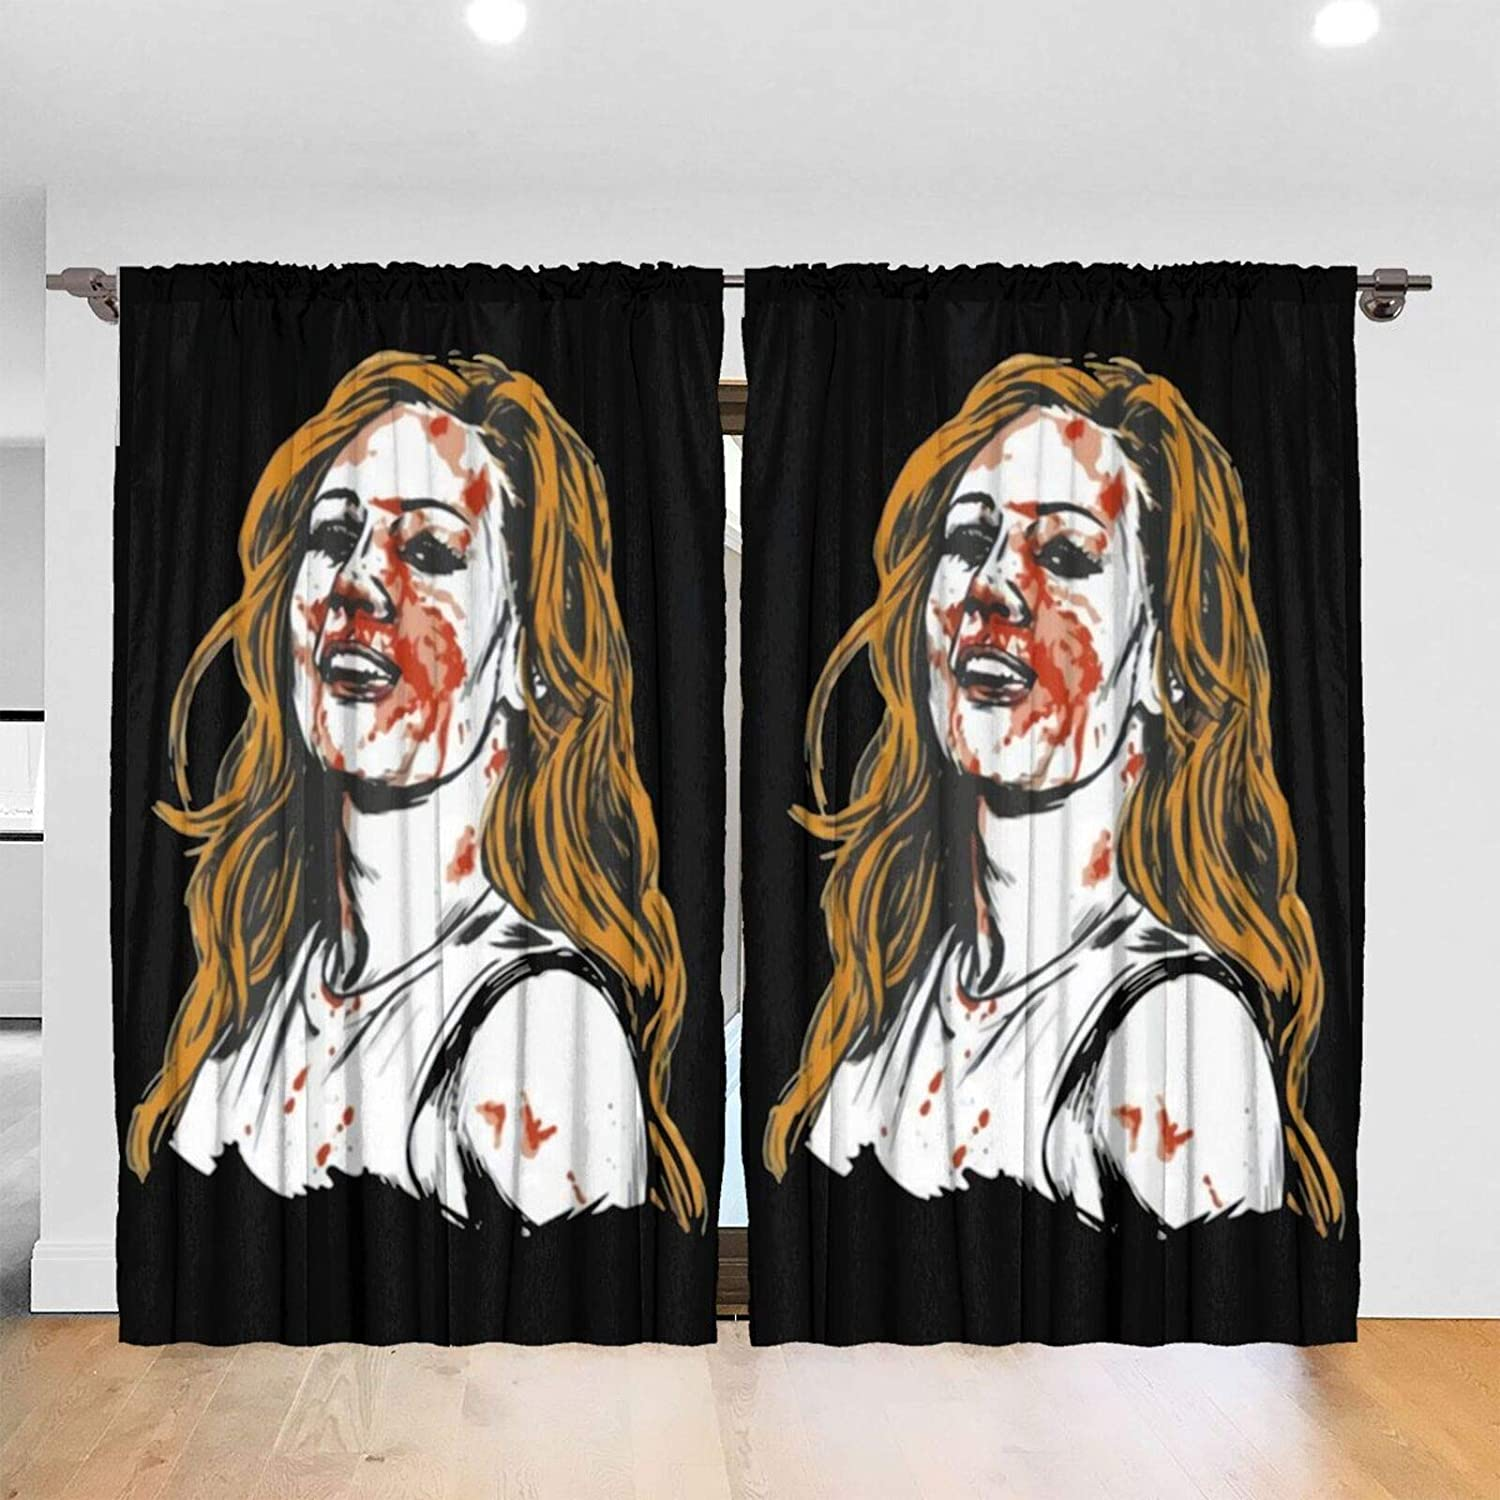 Hizhogqul Becky Lynch Blackout Window Curtains Thermal Insulated Room Darkening Drape for Bedroom Living Room 52 X 72 Inch